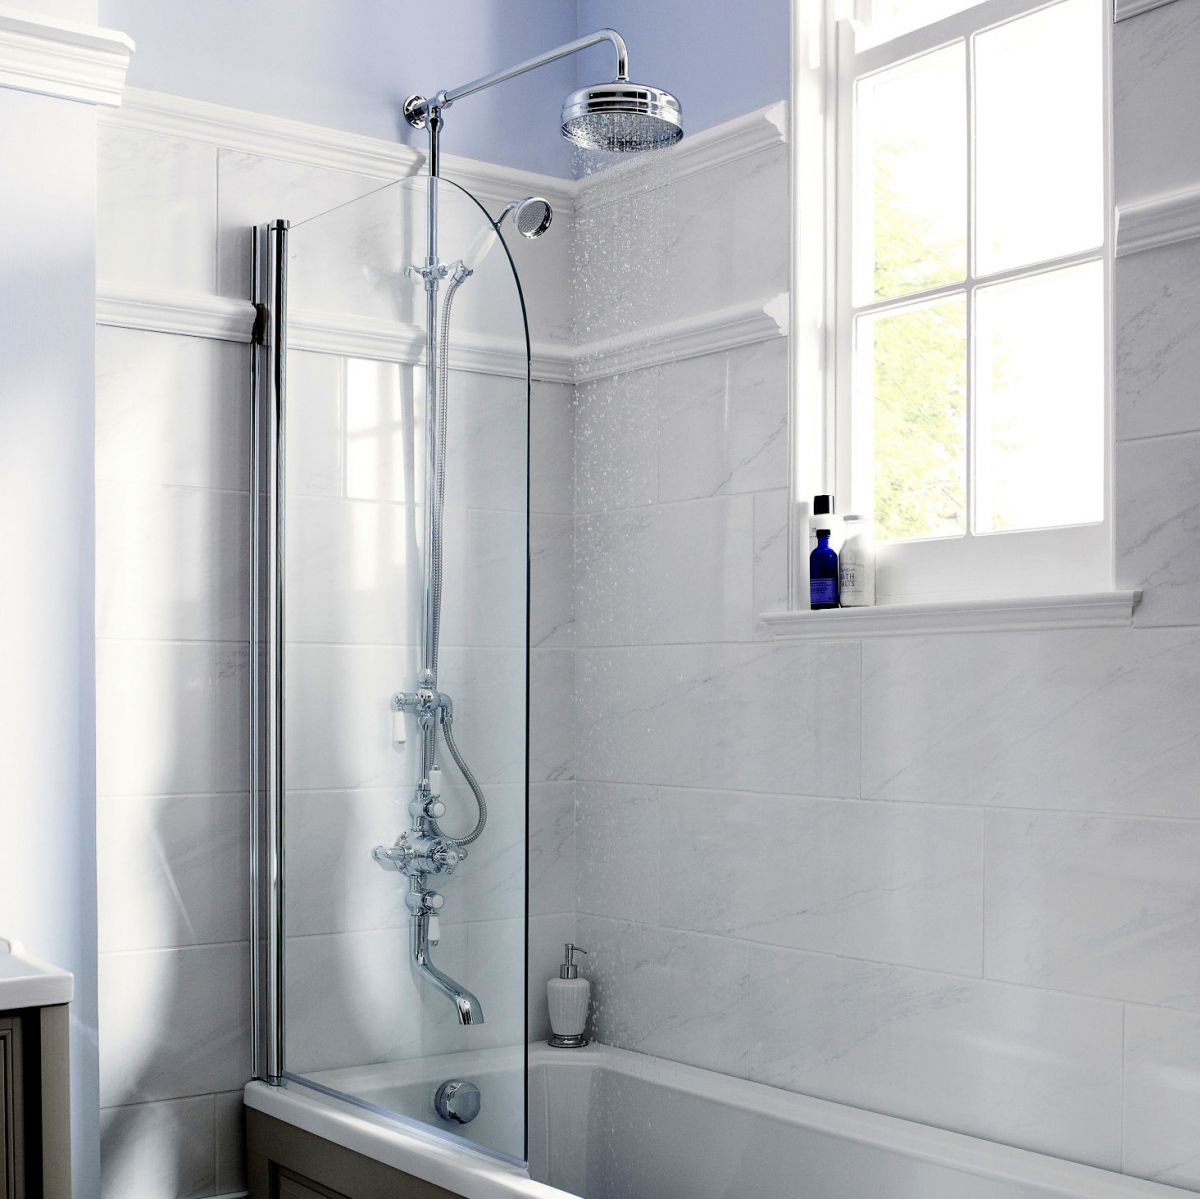 Old London Triple Exposed Shower Valve with Rigid Riser and Bath ...